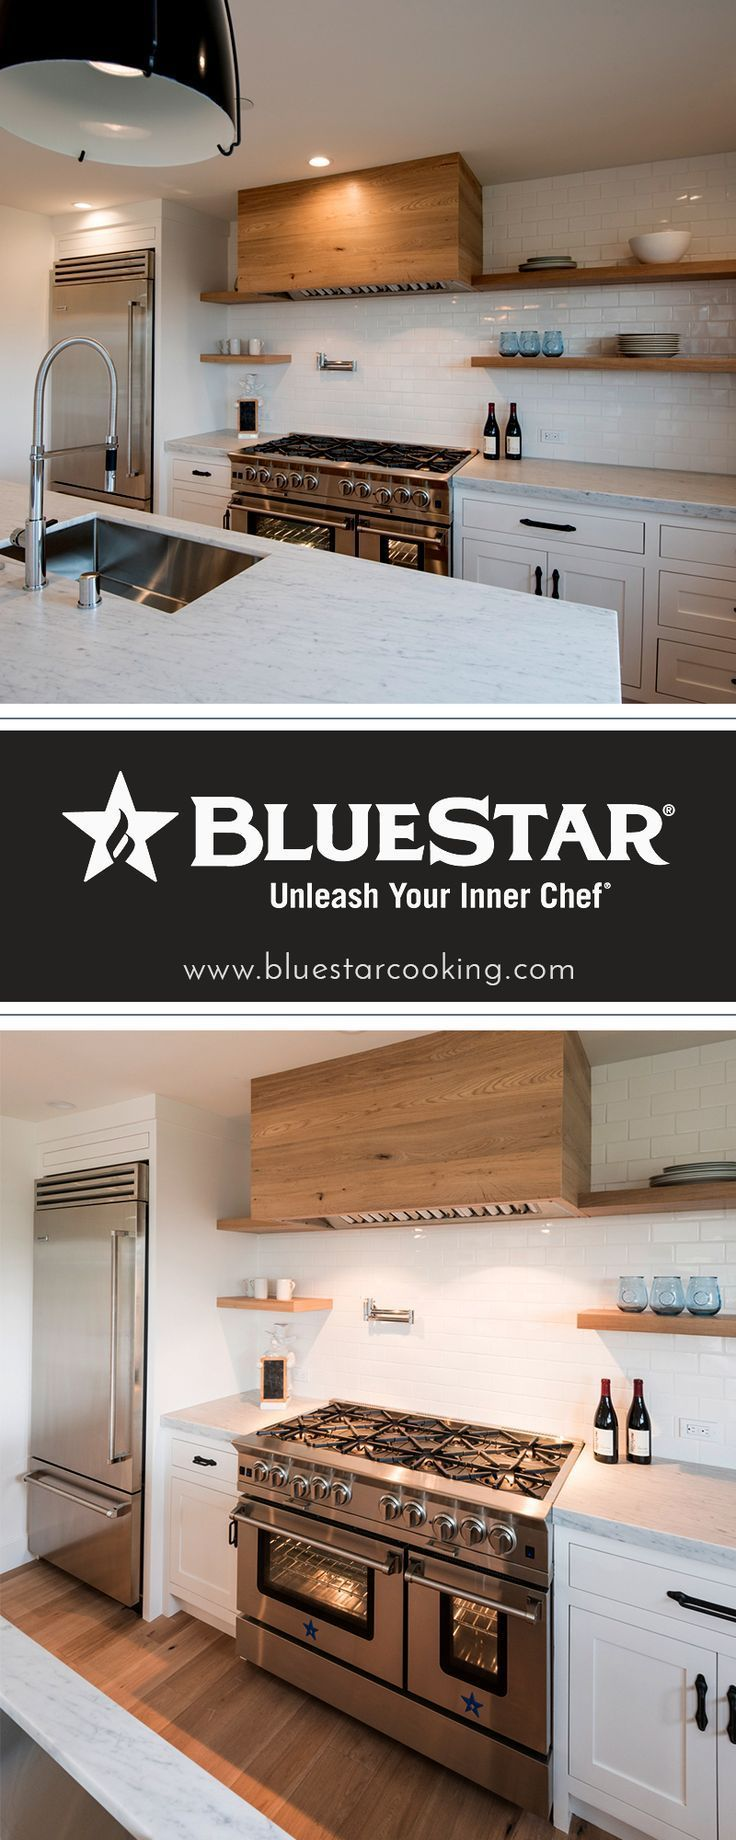 Luxury Lifestyle Create a unique kitchen style with over